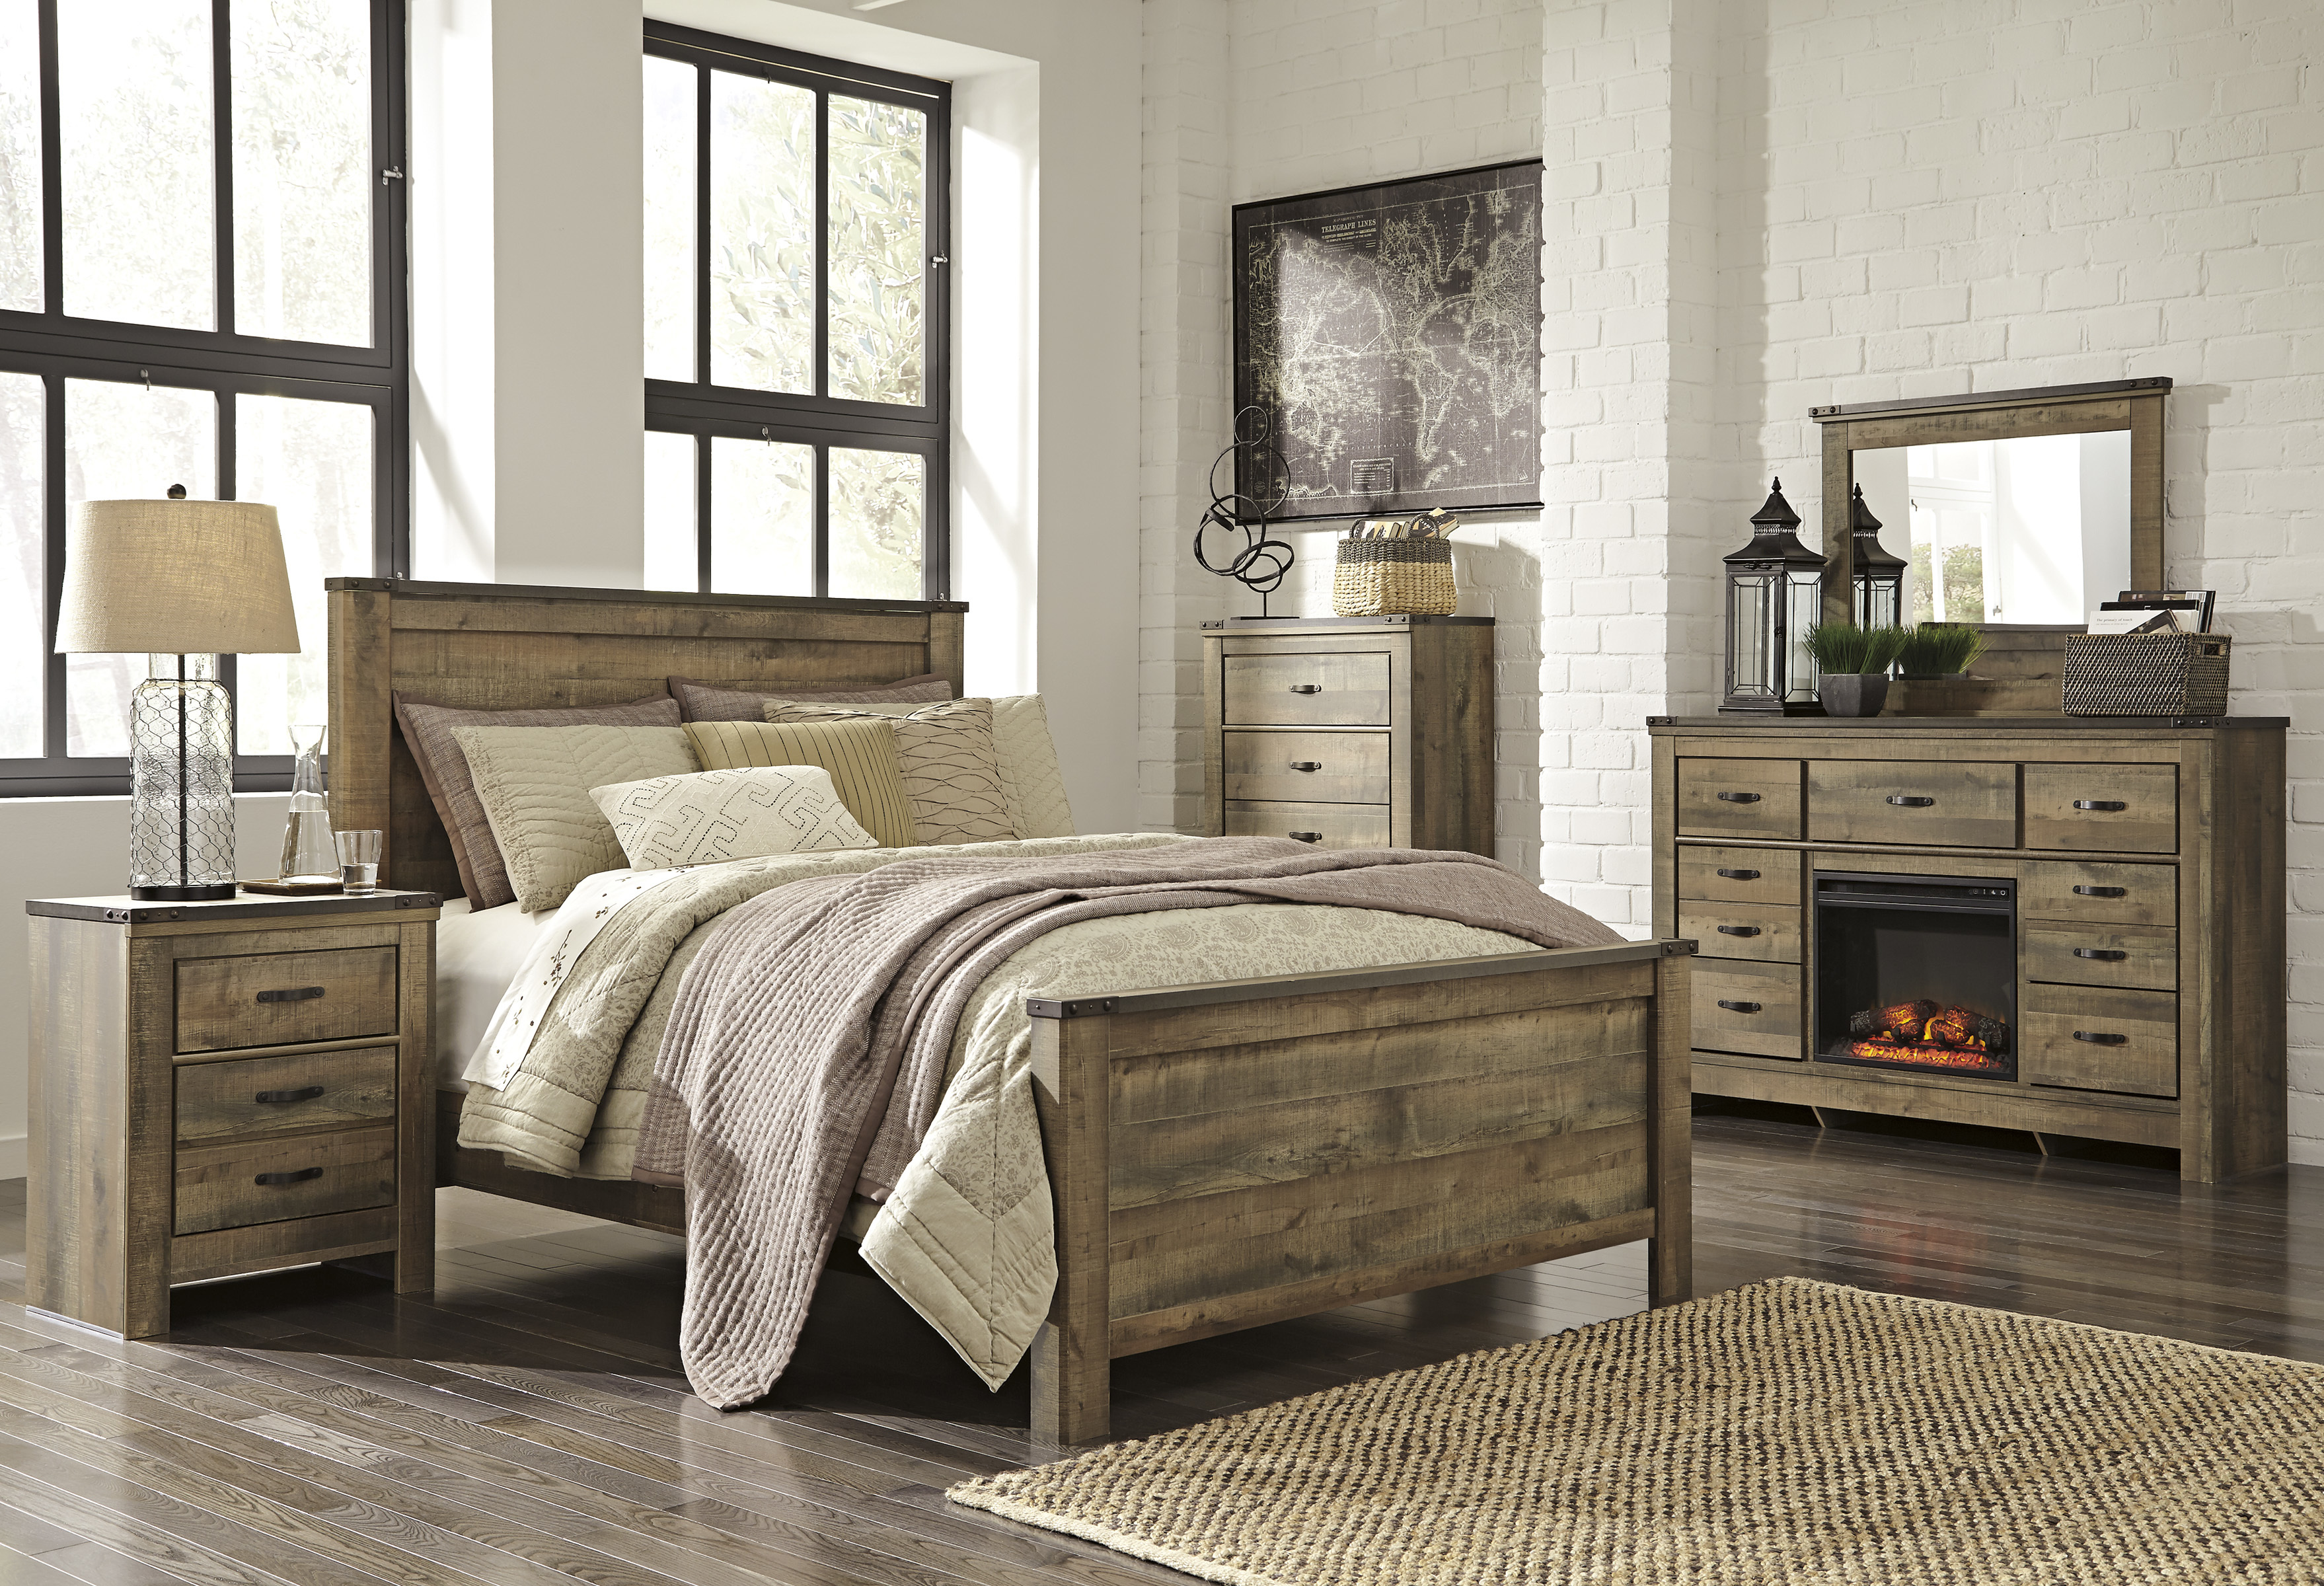 Utah Rustic Furniture By Bradleys – Natural Talalay Latex Mattress And Latex Mattress Topper Store In Salt Lake City Ut